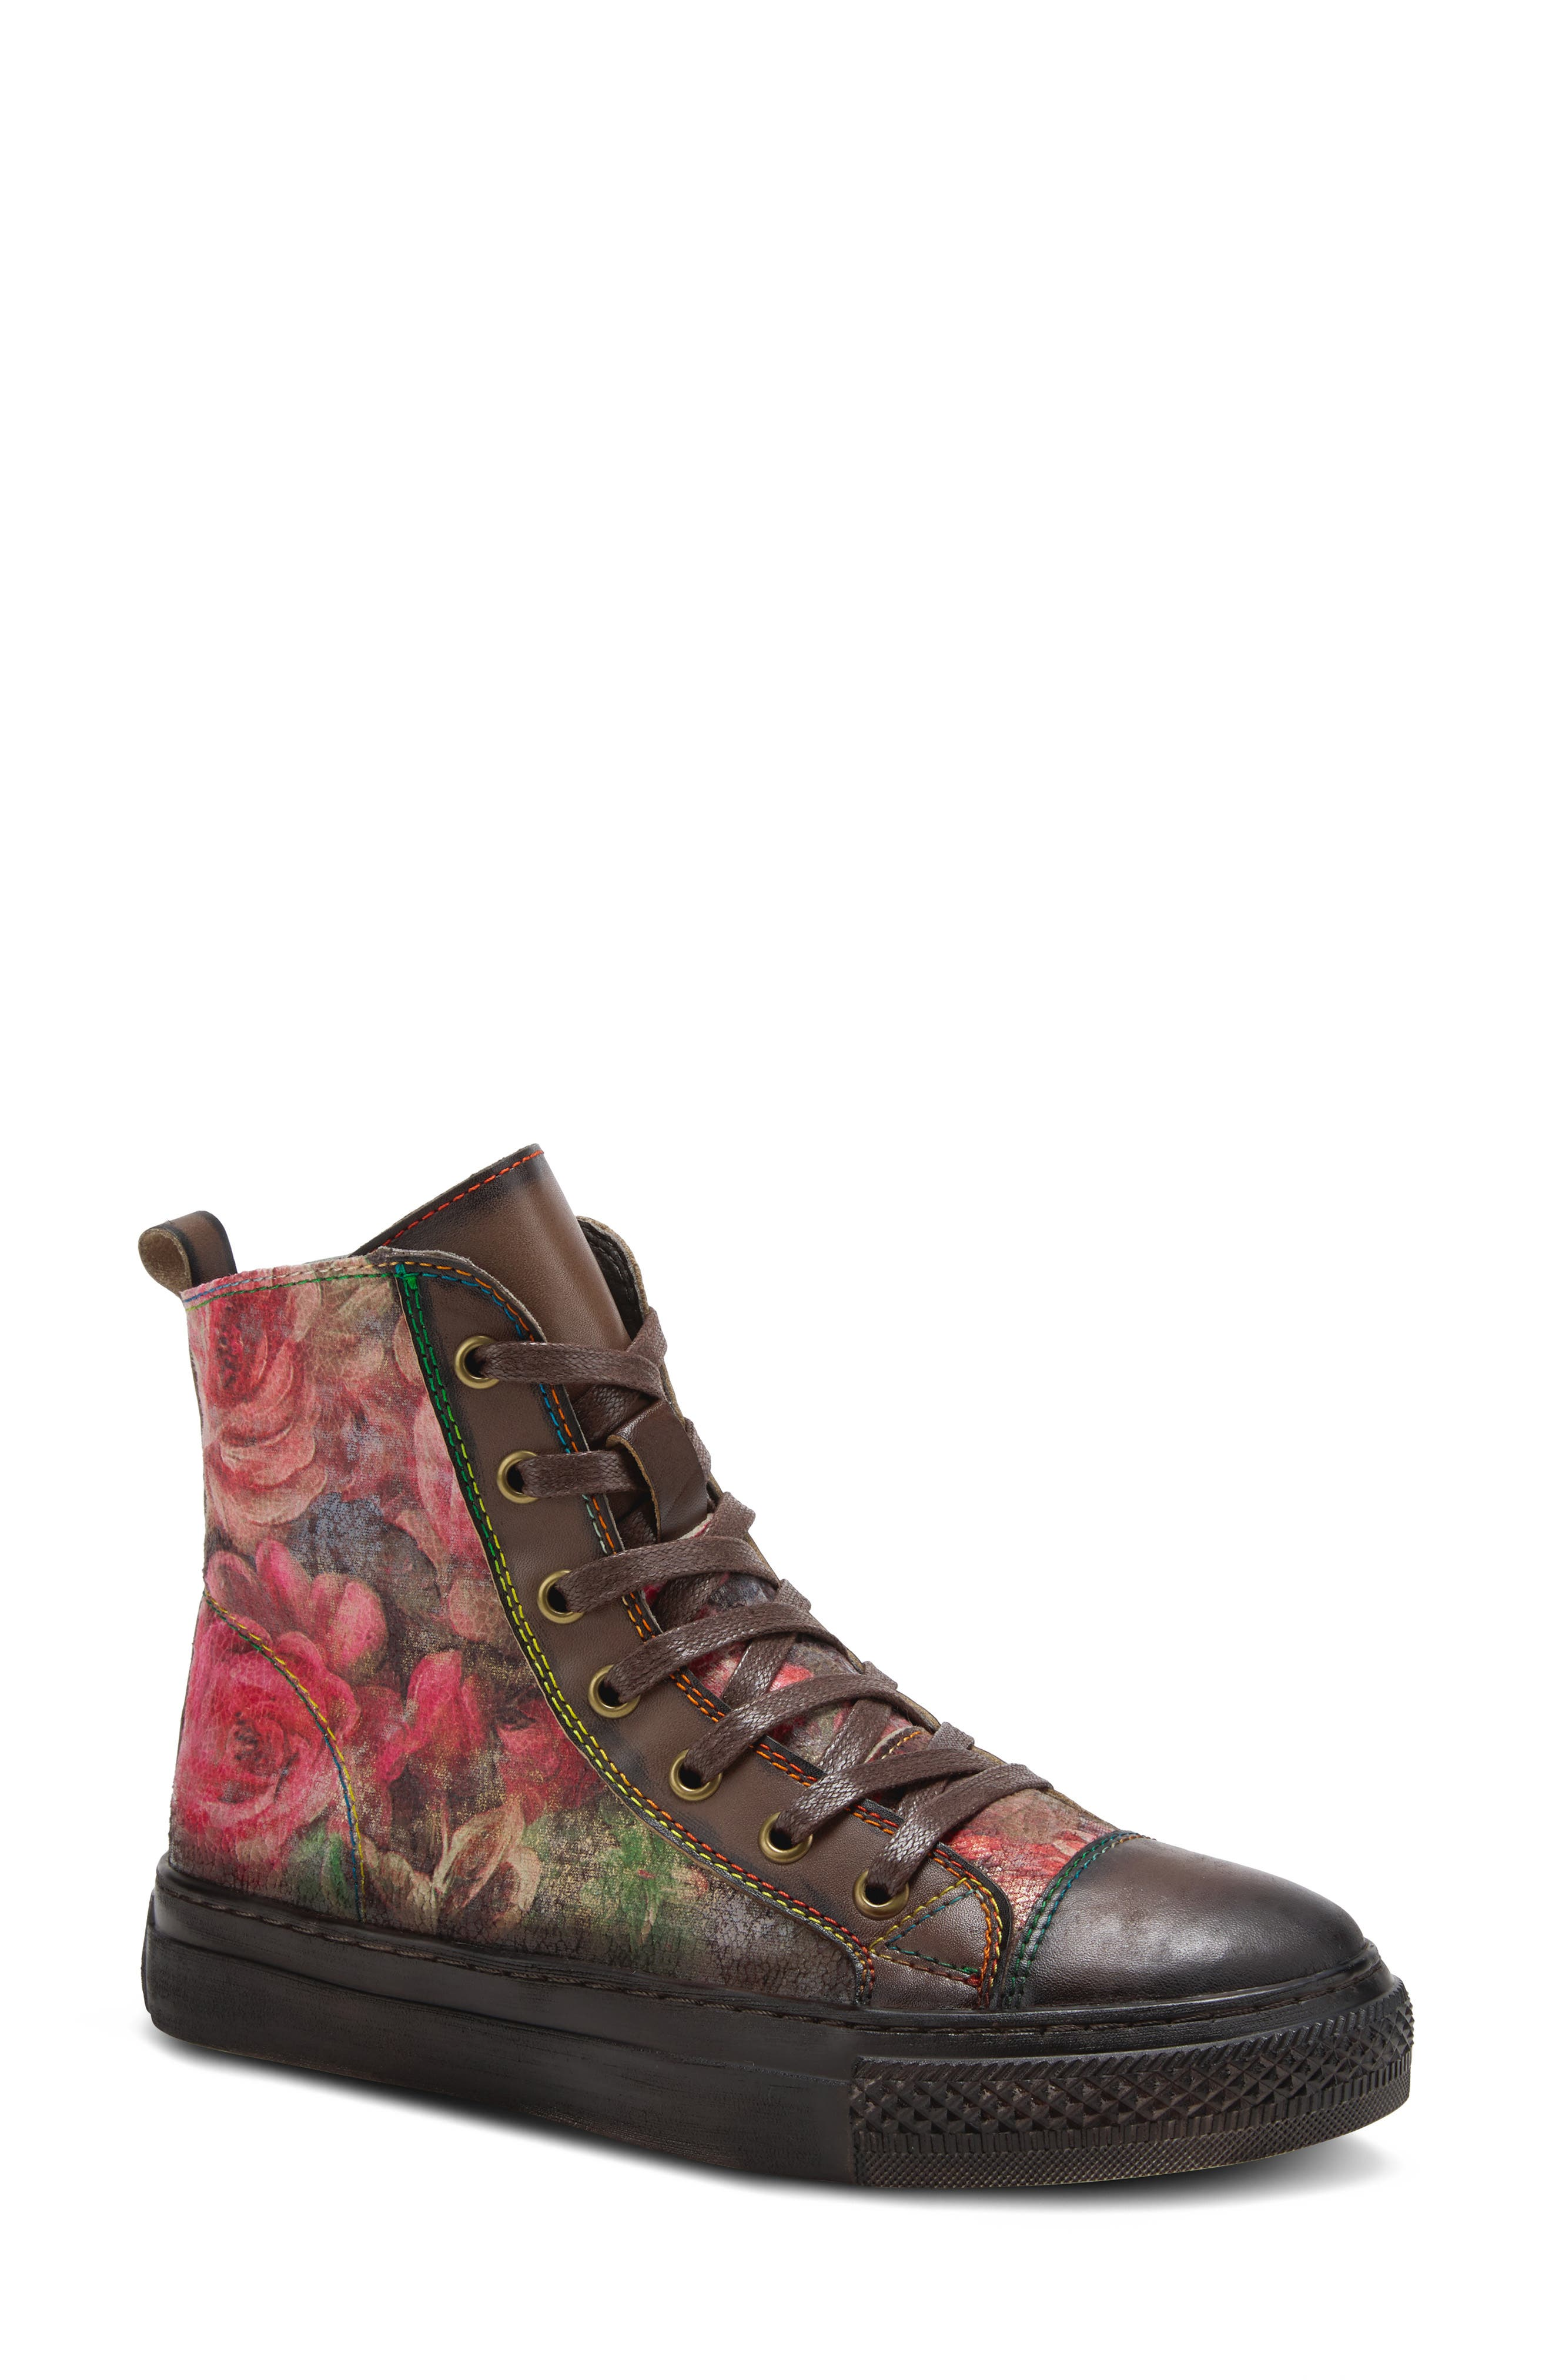 Colorful floral patterns swirl across this fun-loving combat boot outfitted with a cap-toe, contrast stitching and cozy faux-fur lining. Style Name: Spring Step Rose Combat Boot (Women). Style Number: 6143703. Available in stores.